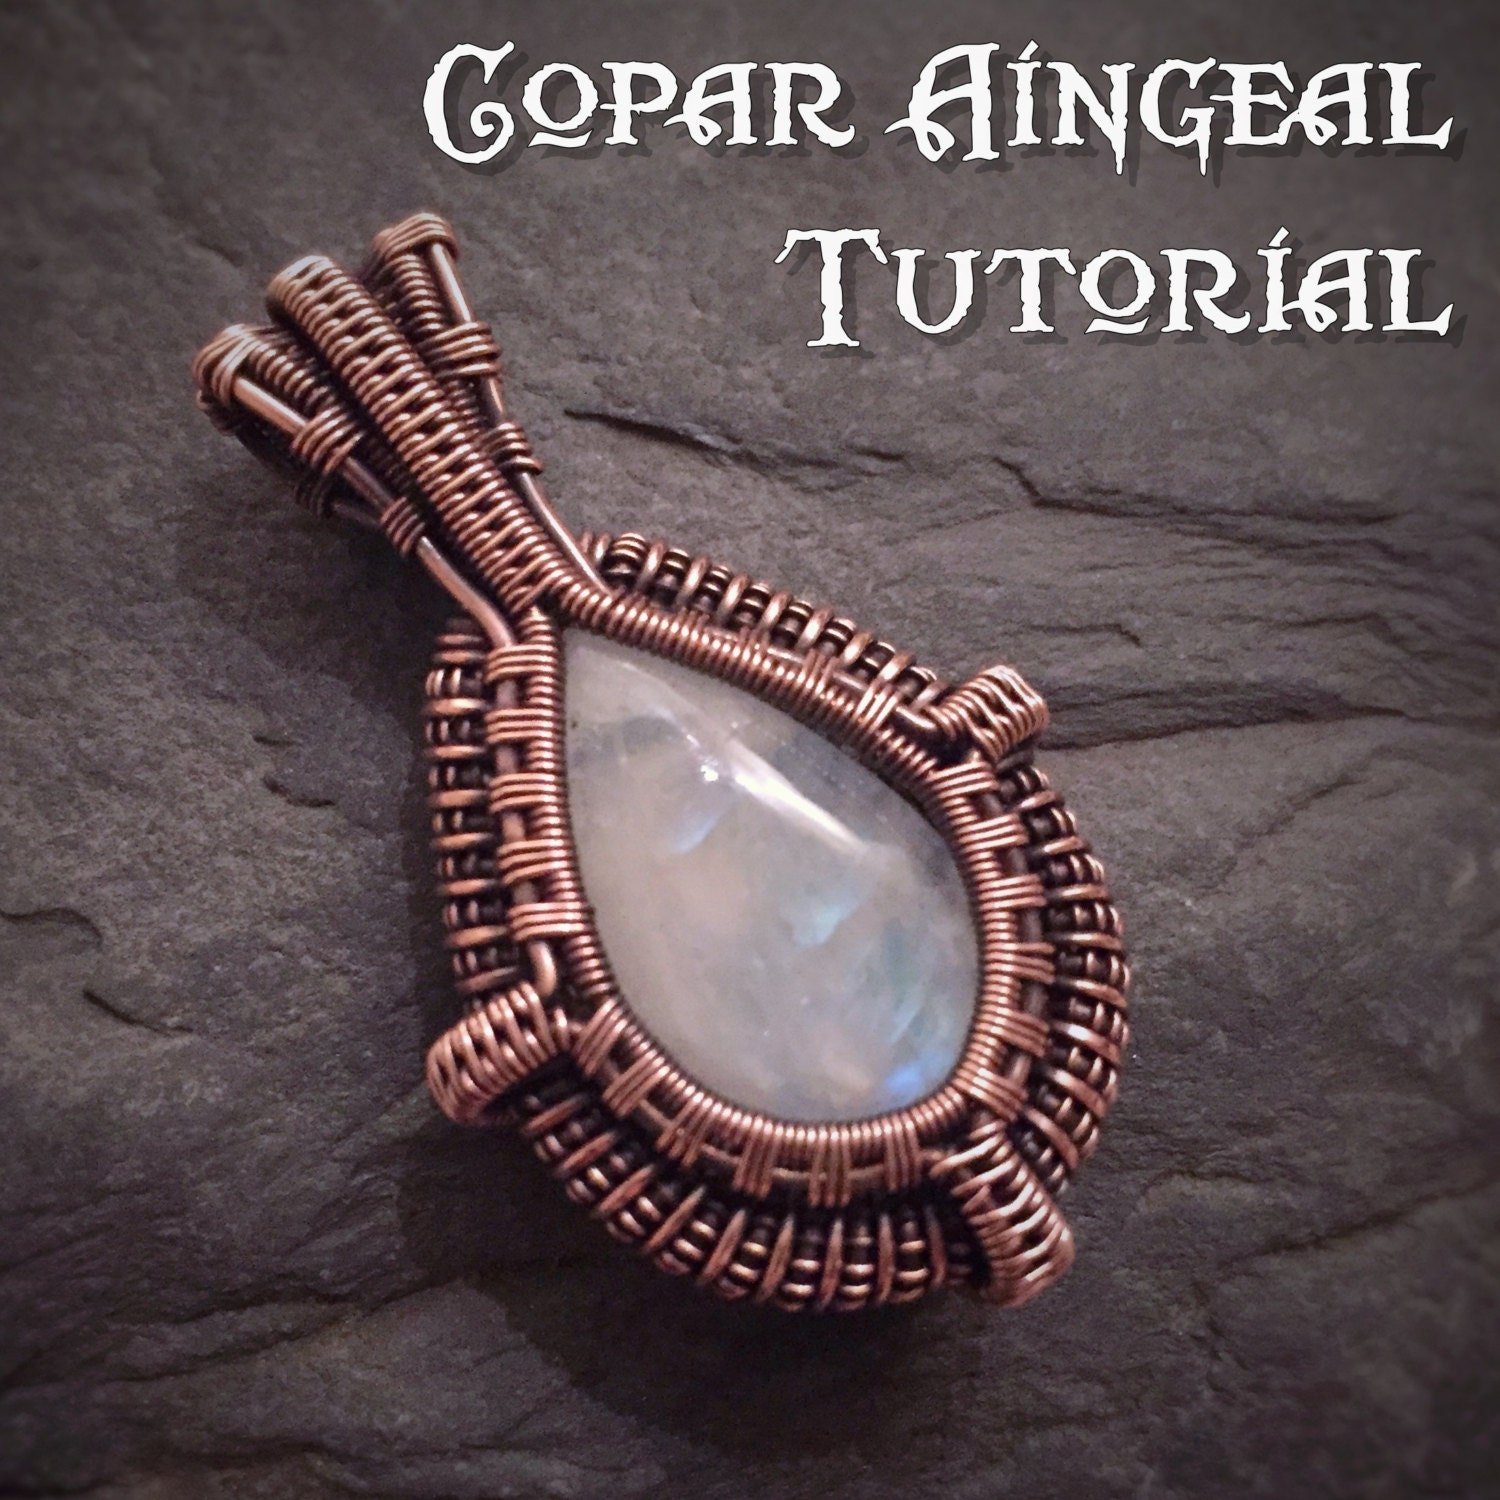 Tutorial portal pendant wire wrapping jewelry pattern oval this is a digital file baditri Images